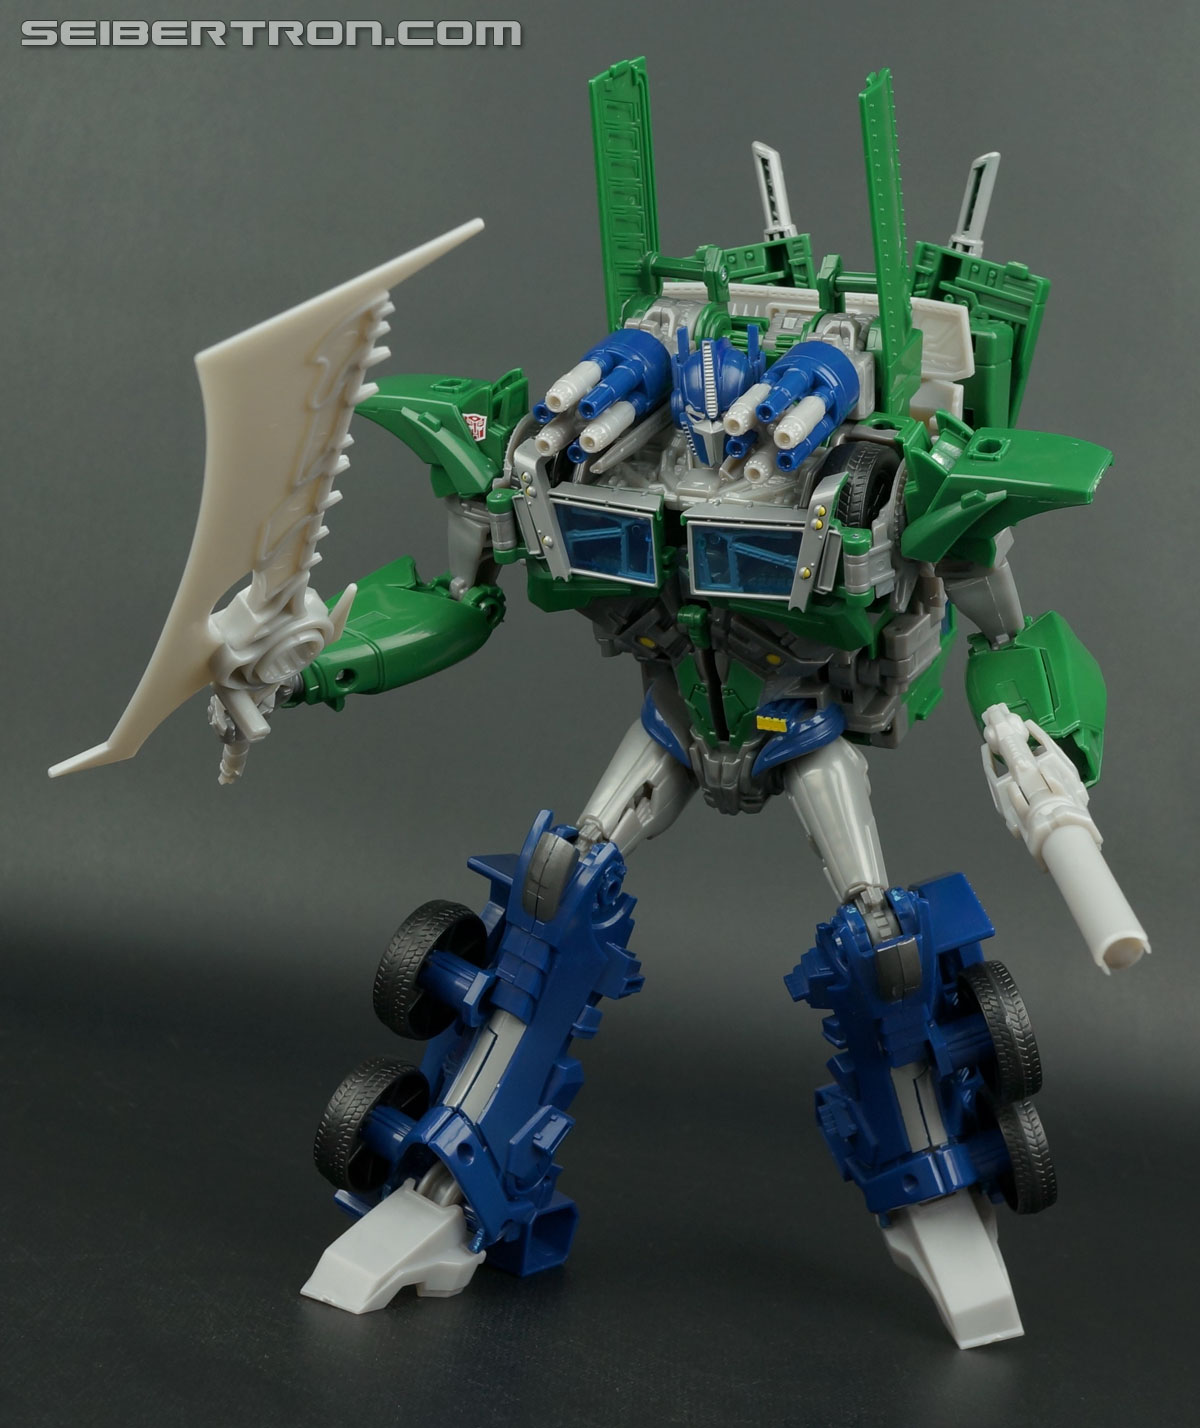 Transformers Prime Beast Hunters Beast Tracker Optimus Prime (Image #135 of 179)